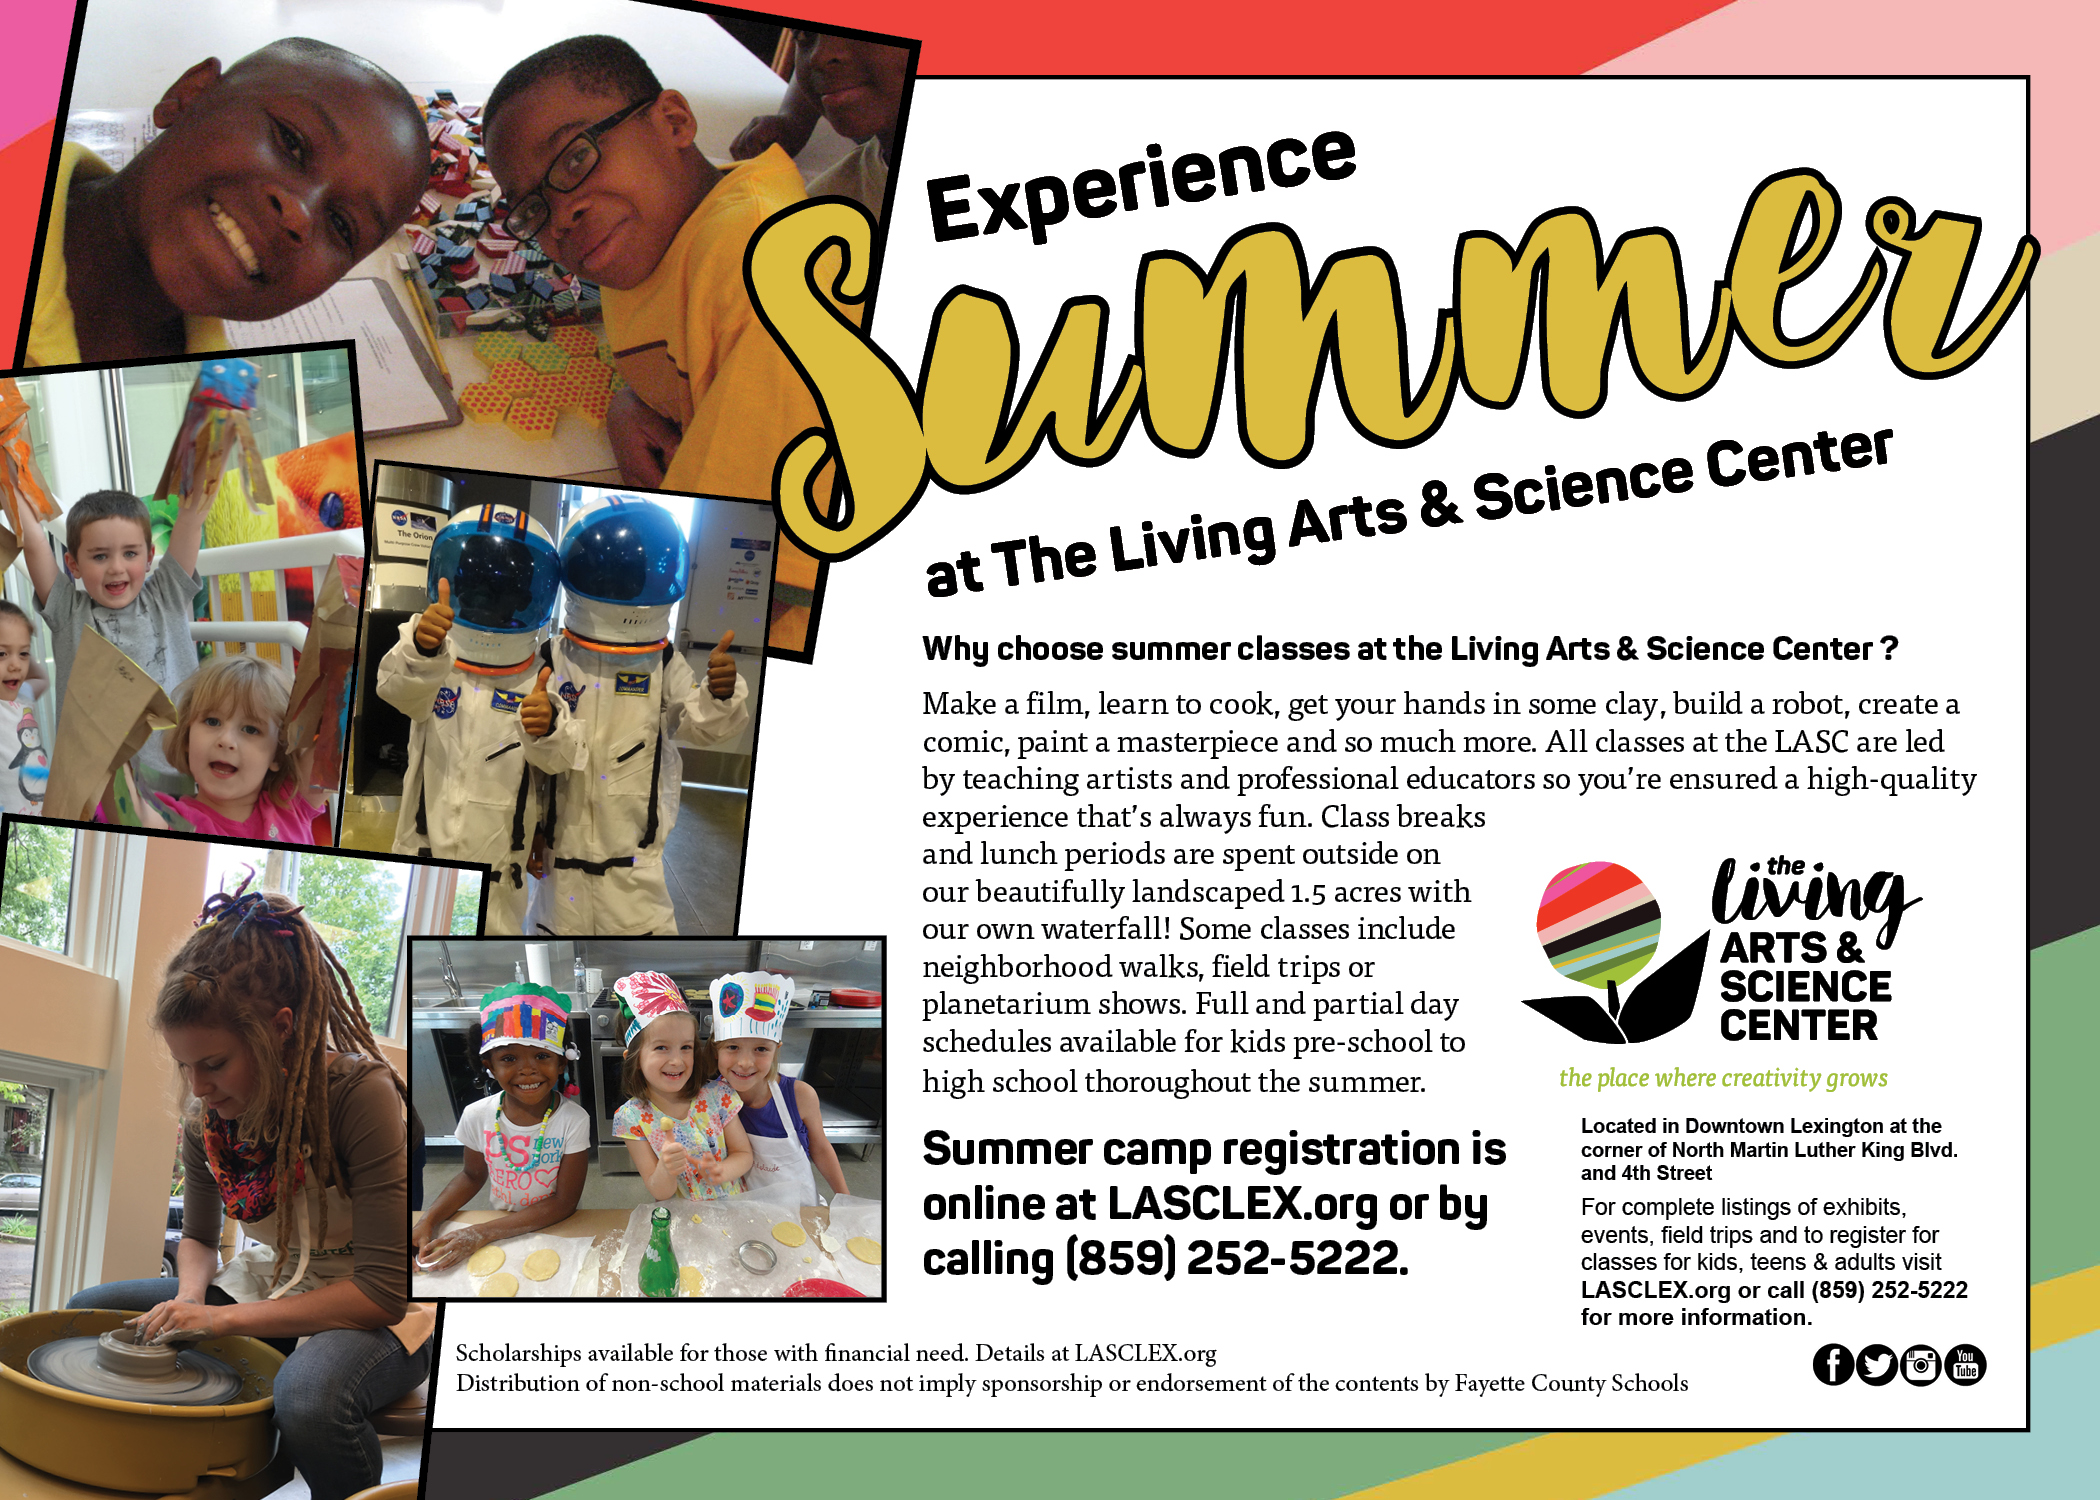 Experience Summer at the LASC